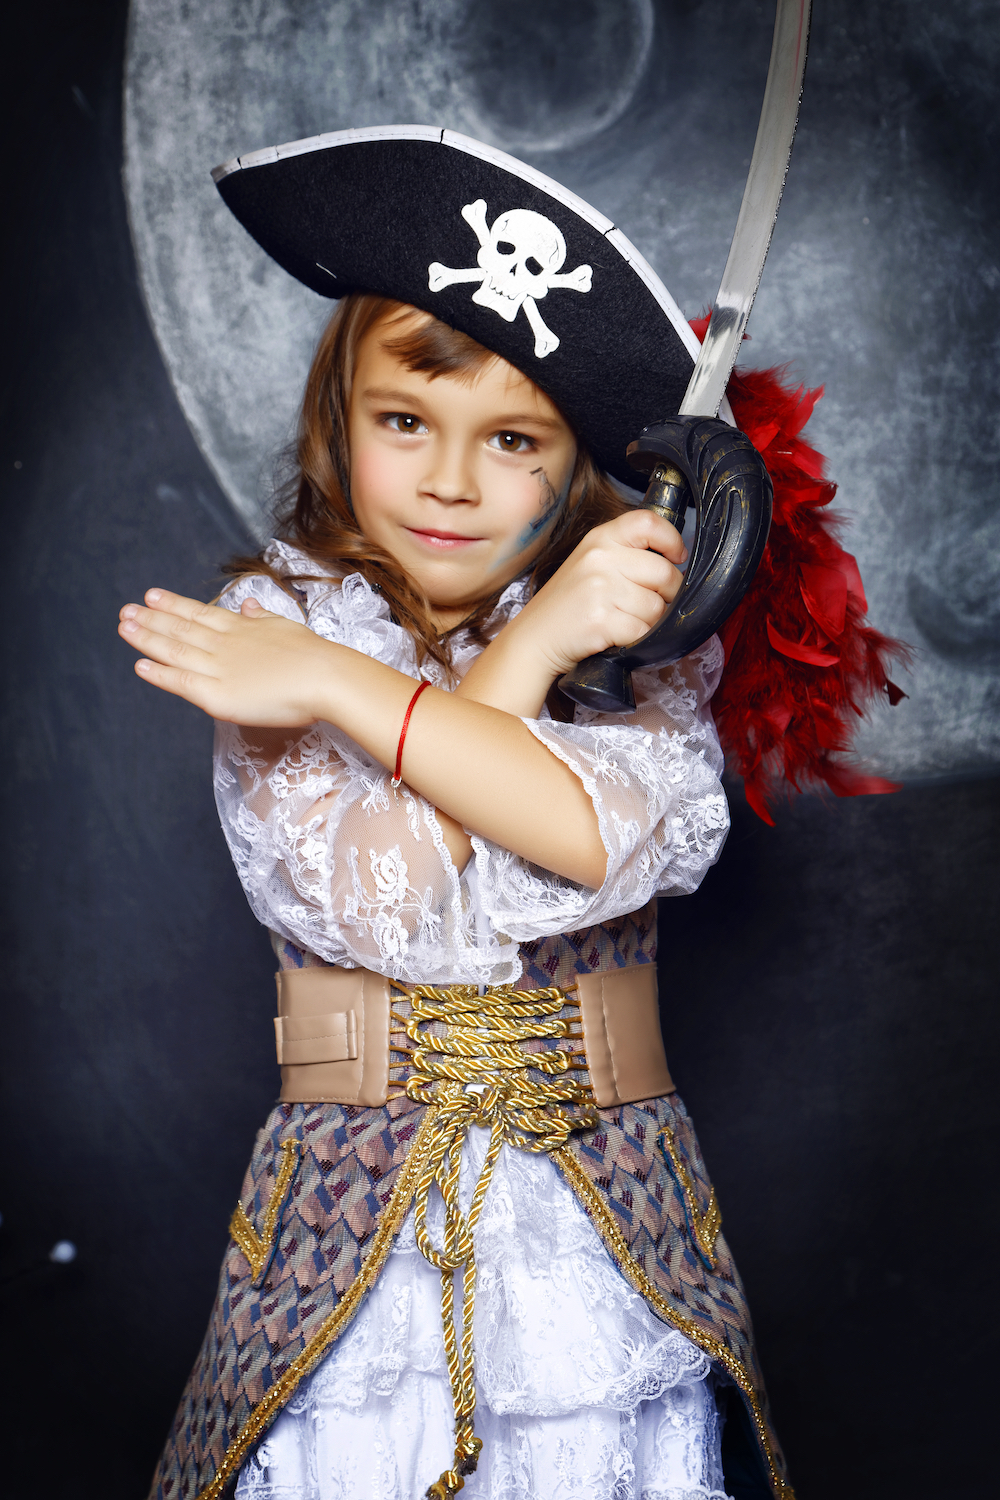 Mermaids & Buccaneers: A day of family fun at the Harbor title=